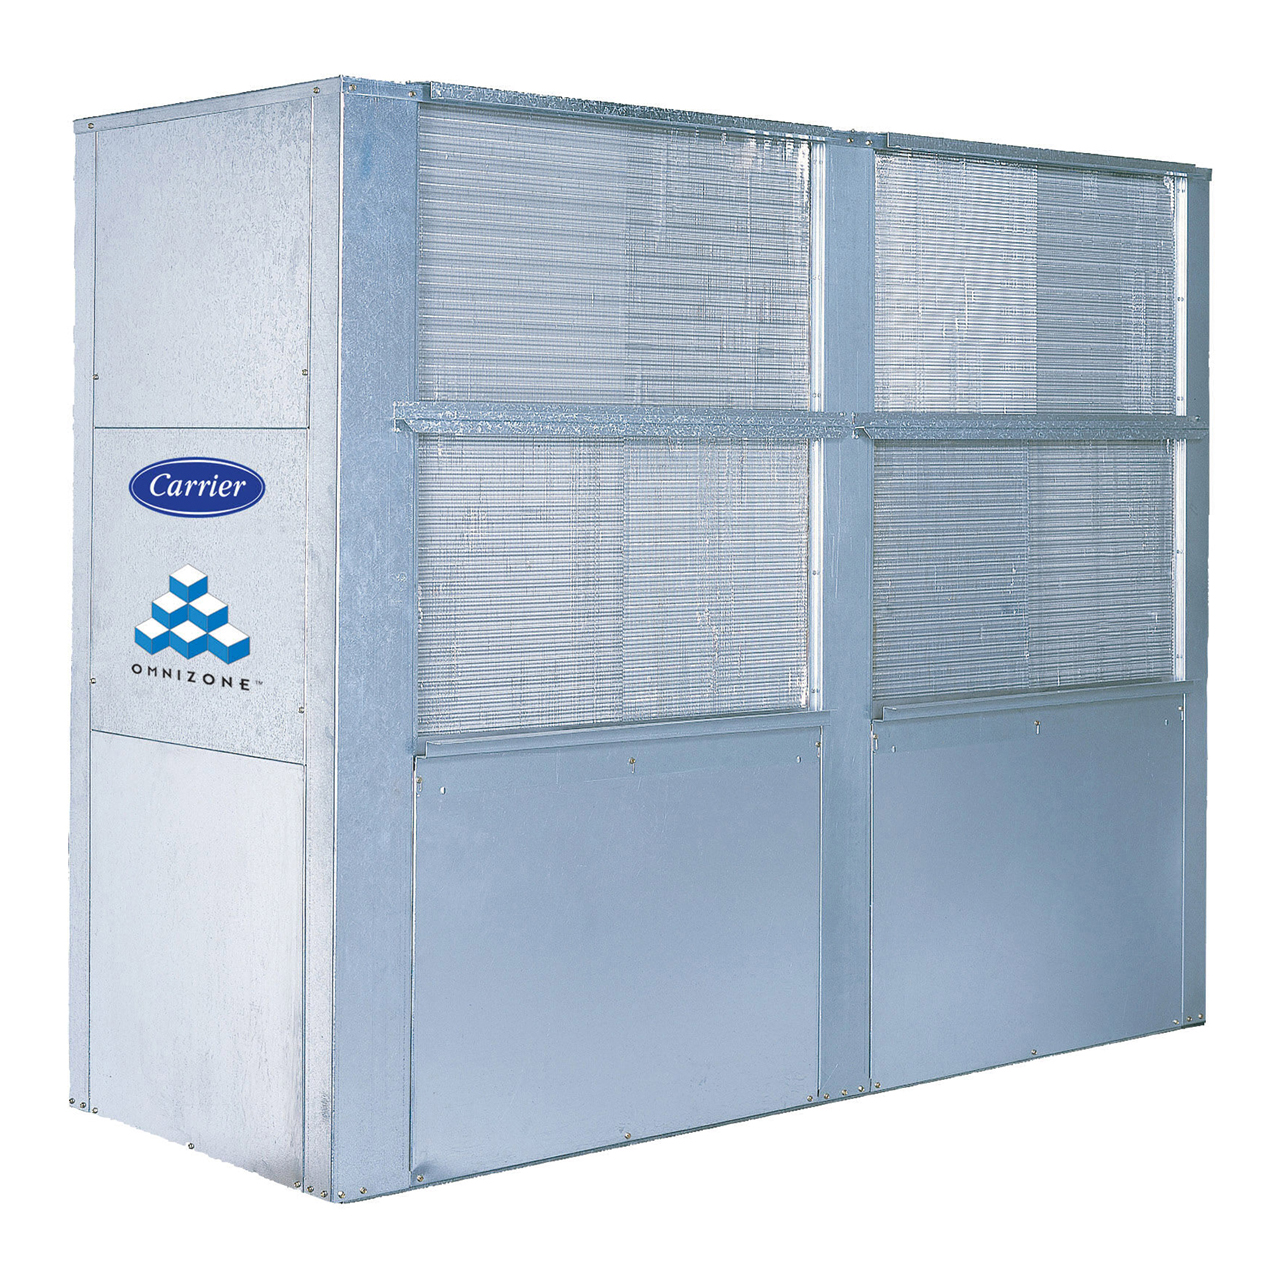 carrier-50bvj-water-cooled-variable-volume-single-piece-indoor-self-contained-unit